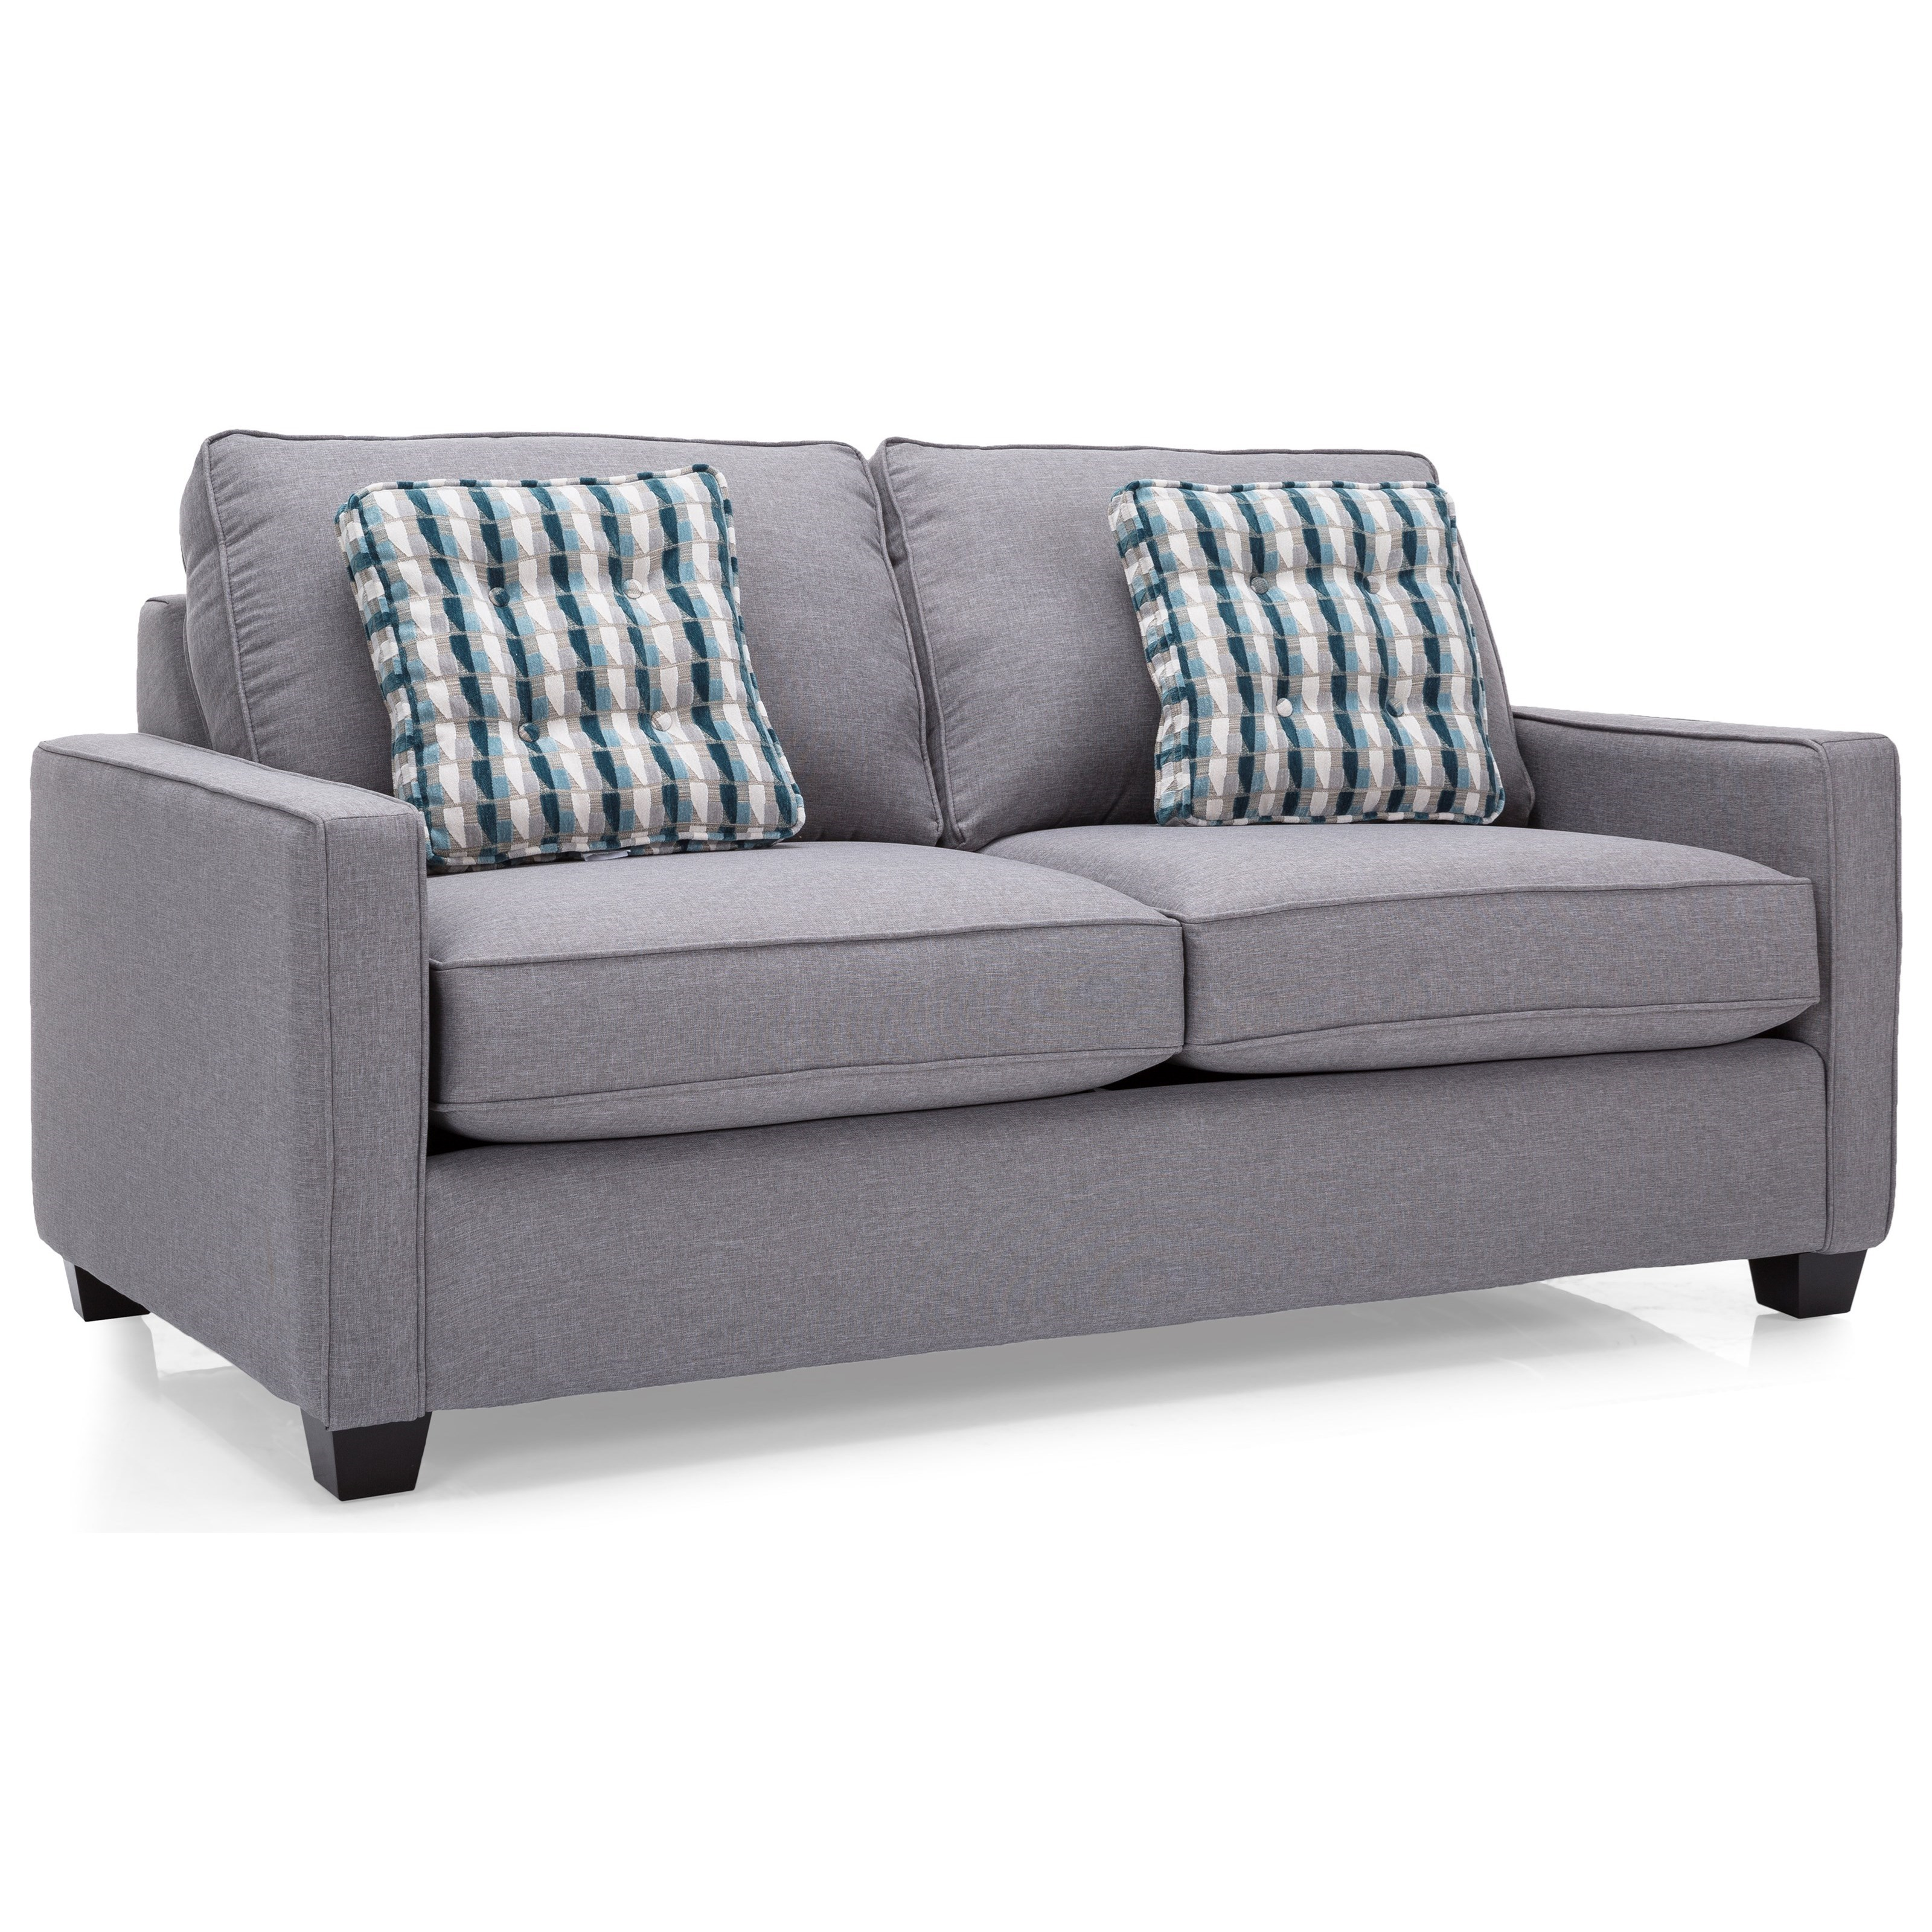 2855 Double Sleeper Sofa Bed by Decor-Rest at Johnny Janosik